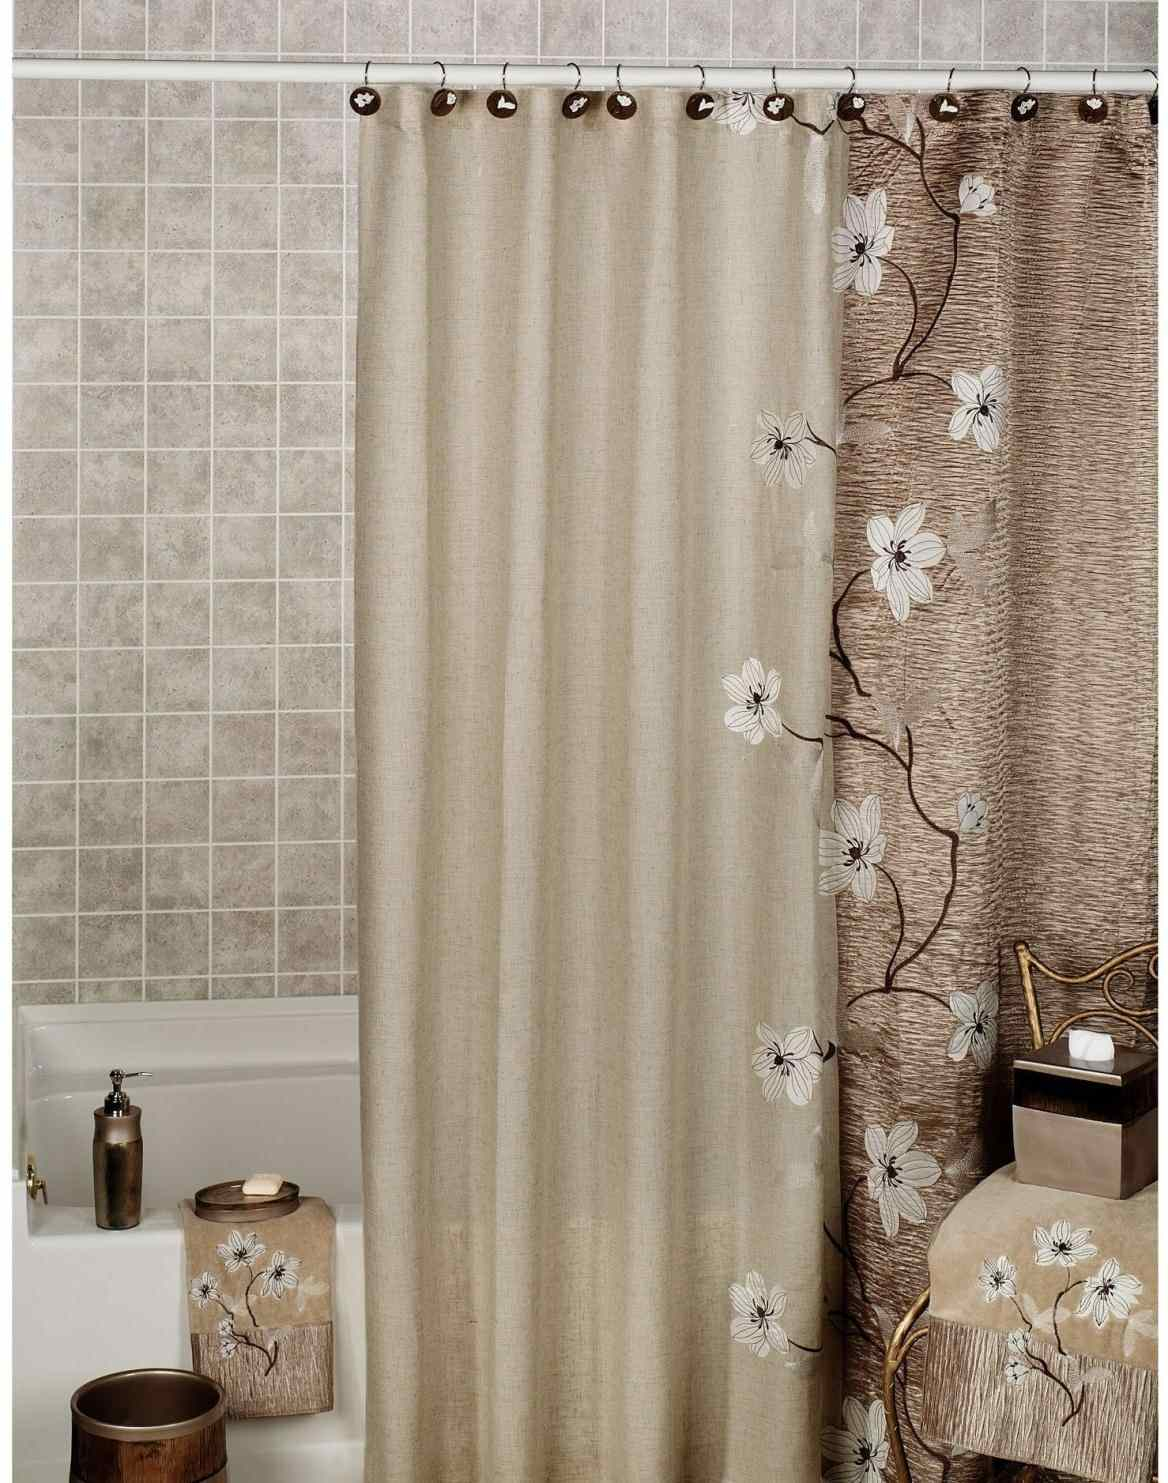 Crate And Barrel Taza Shower Curtain • Shower Curtains Ideas